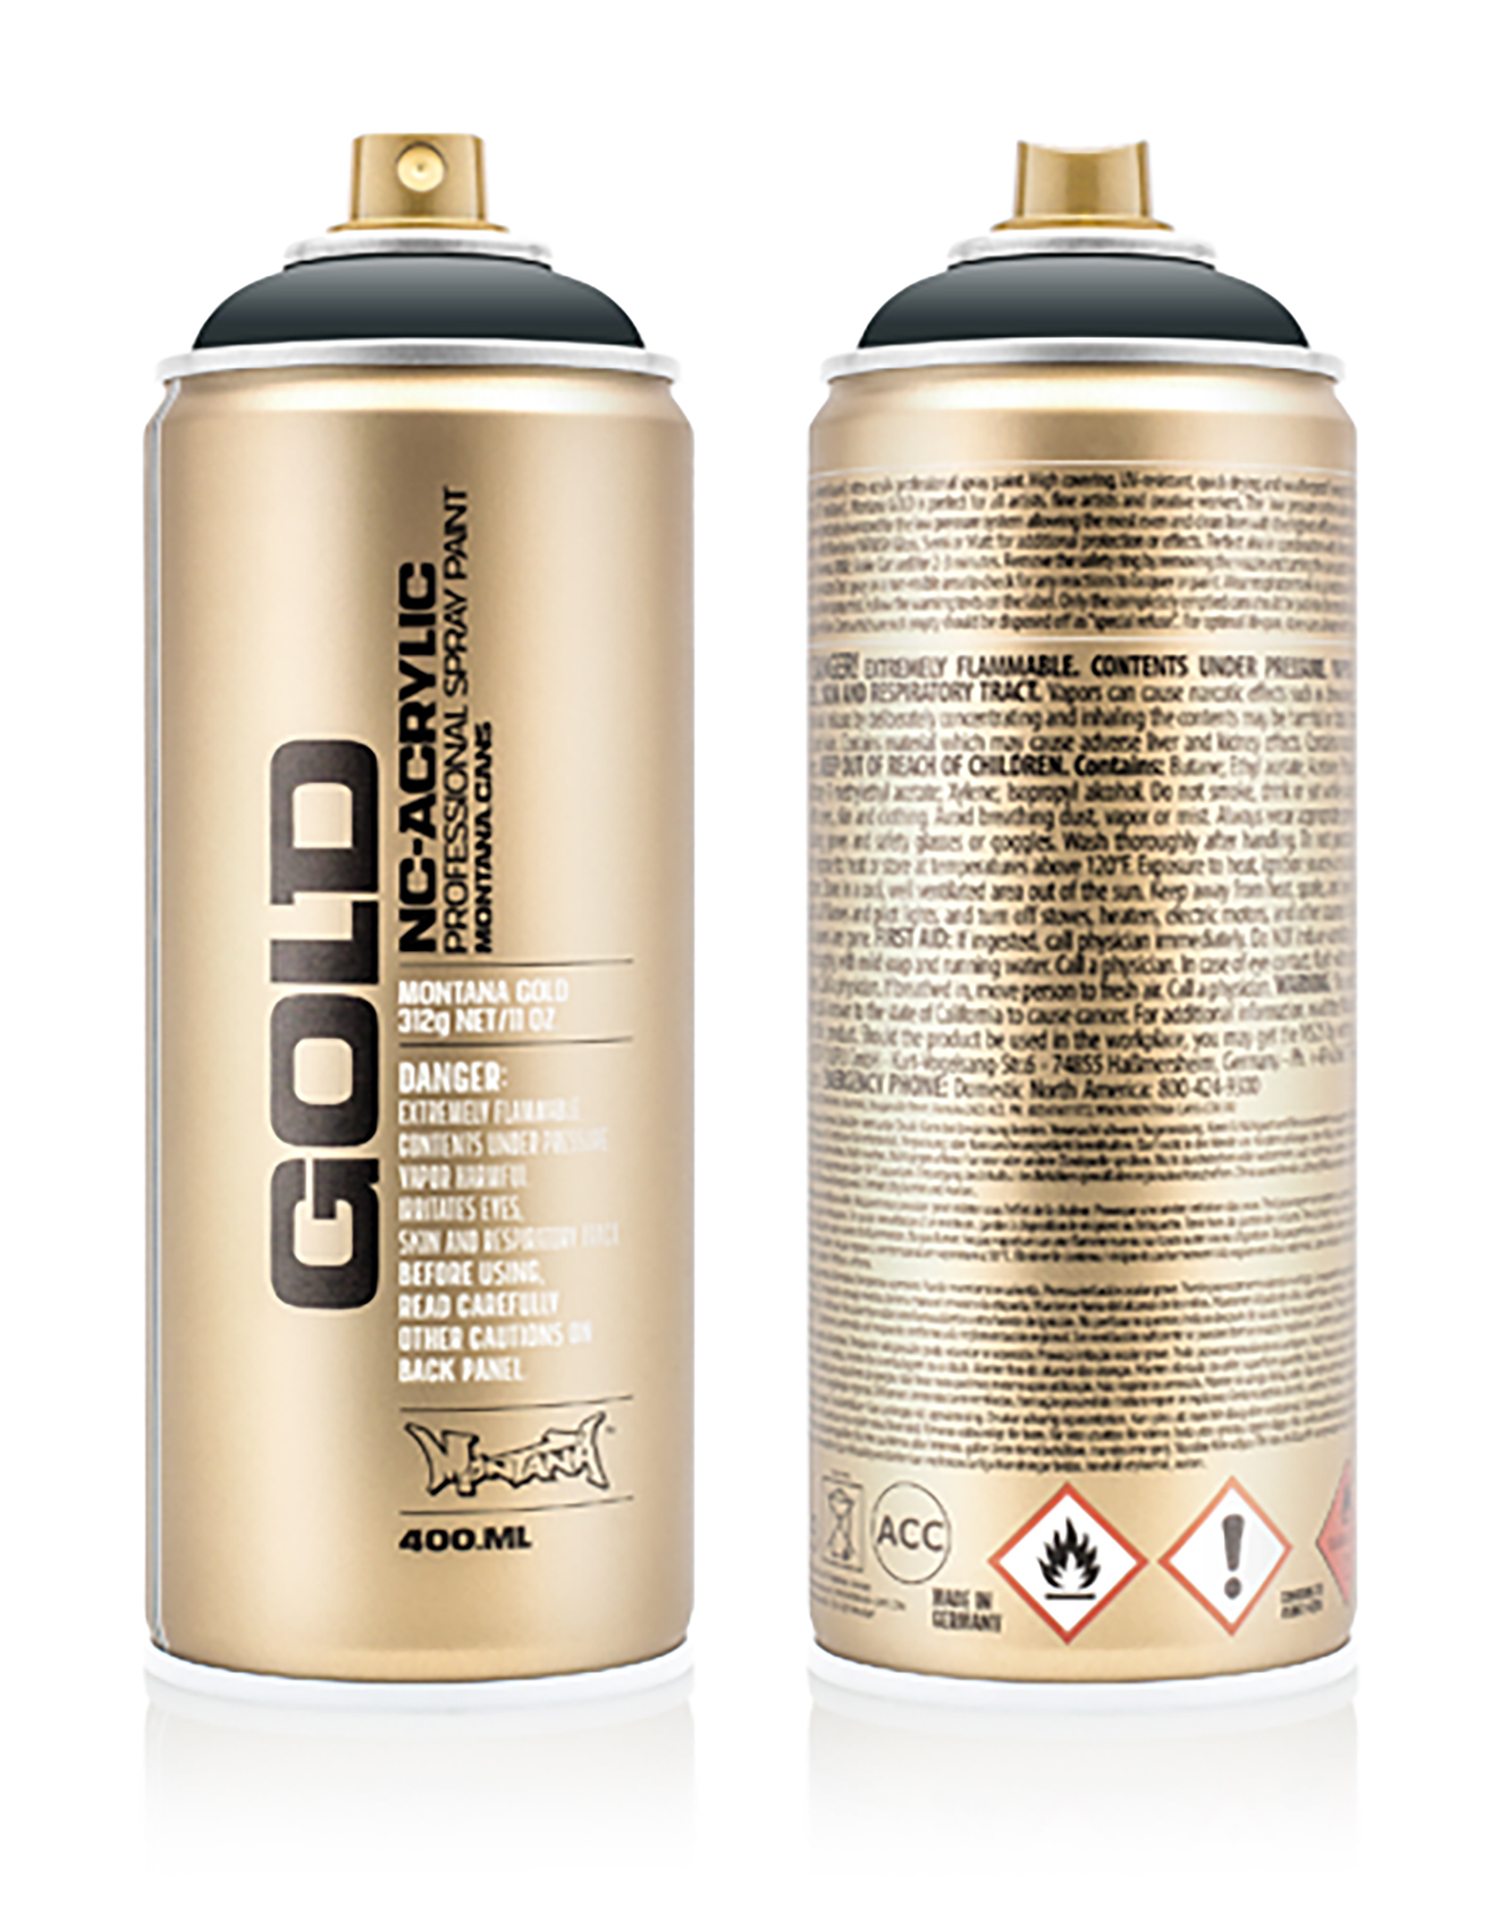 MONTANA-GOLD-SPRAY-400ML-G-7070